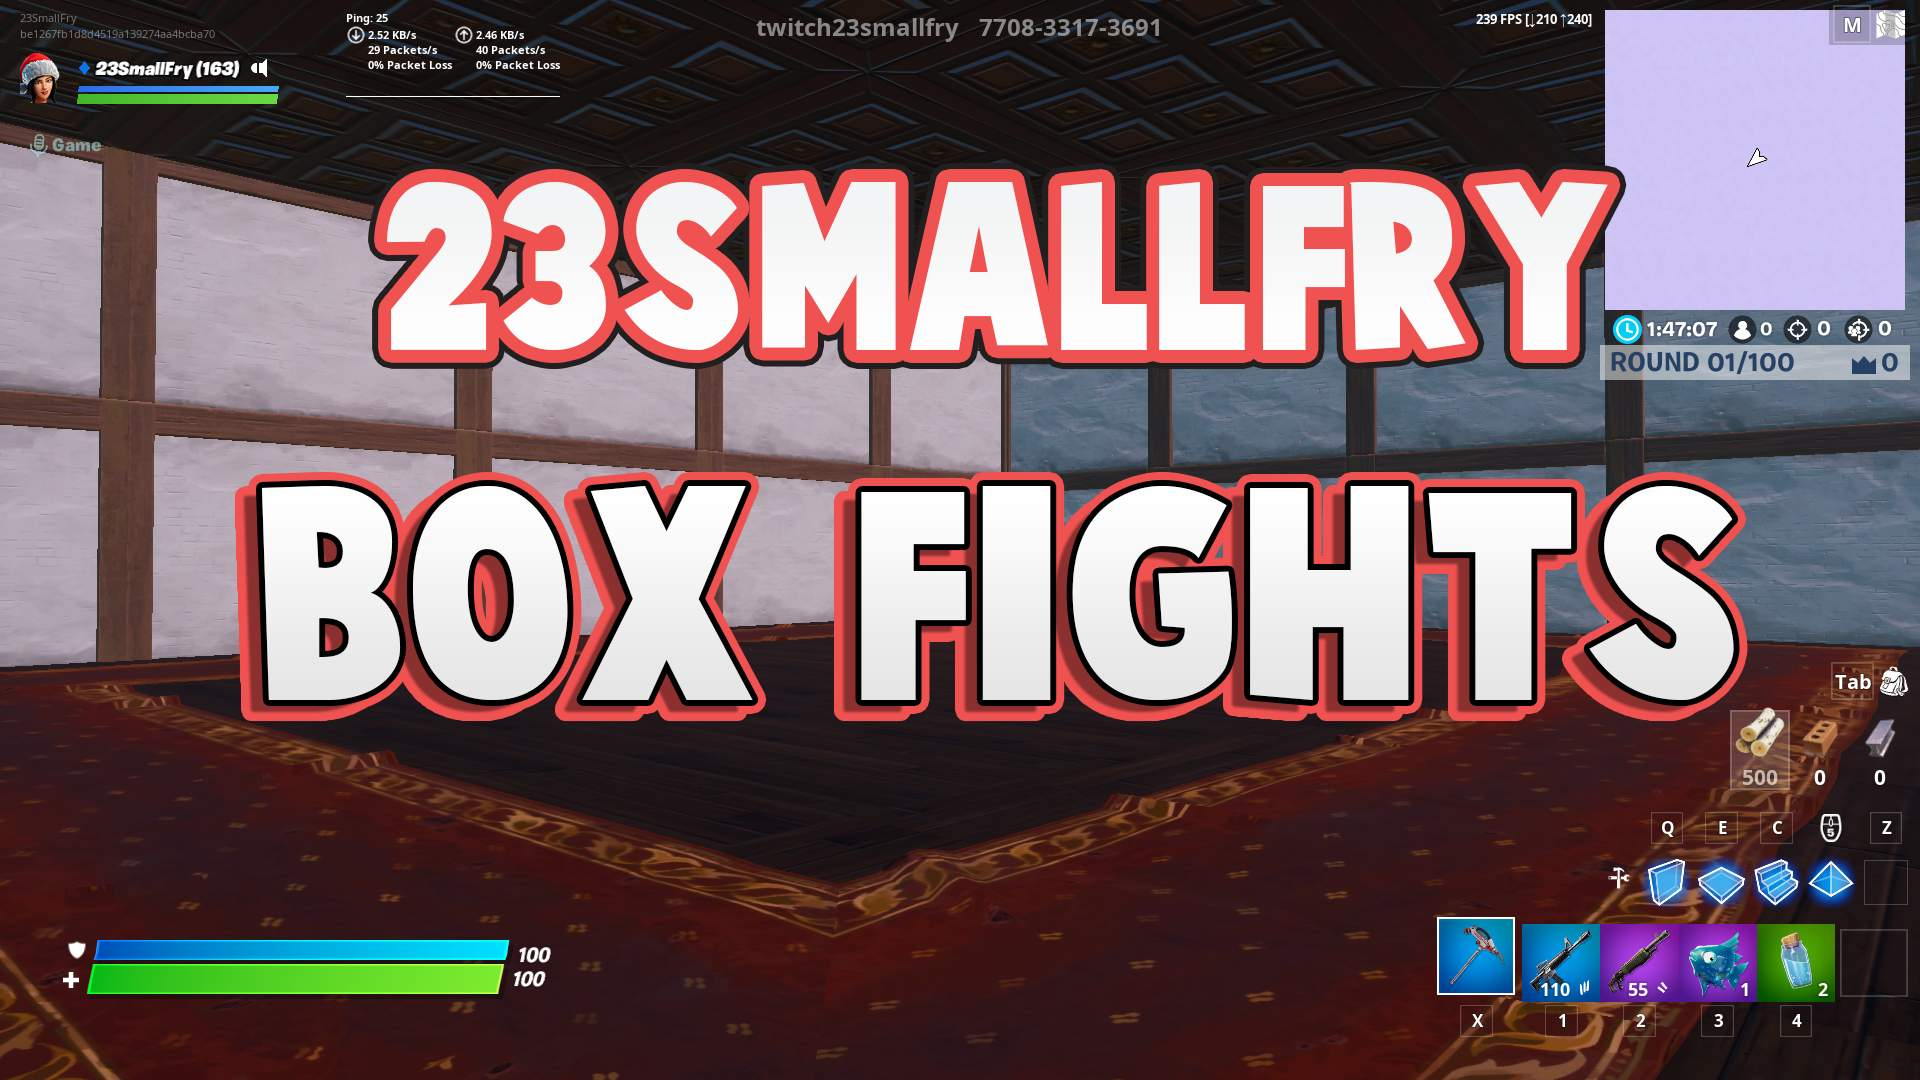 1V1/2V2/3V3 BOXFIGHT MAP BY 23SMALLFRY